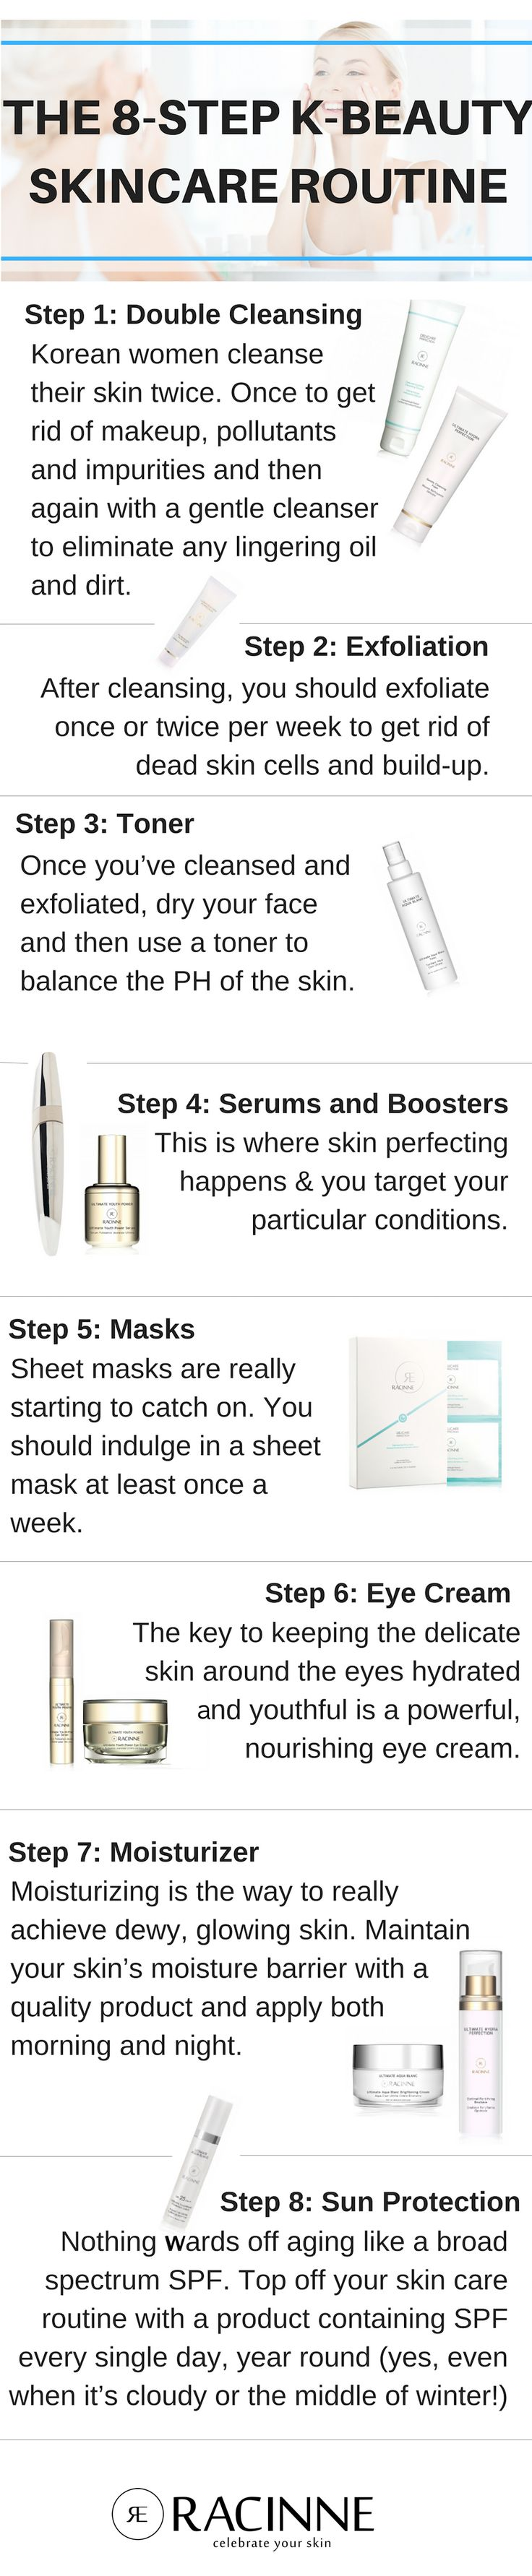 The harold j becker company the moisture protection contractors you - The 8 Step K Beauty Skincare Routine